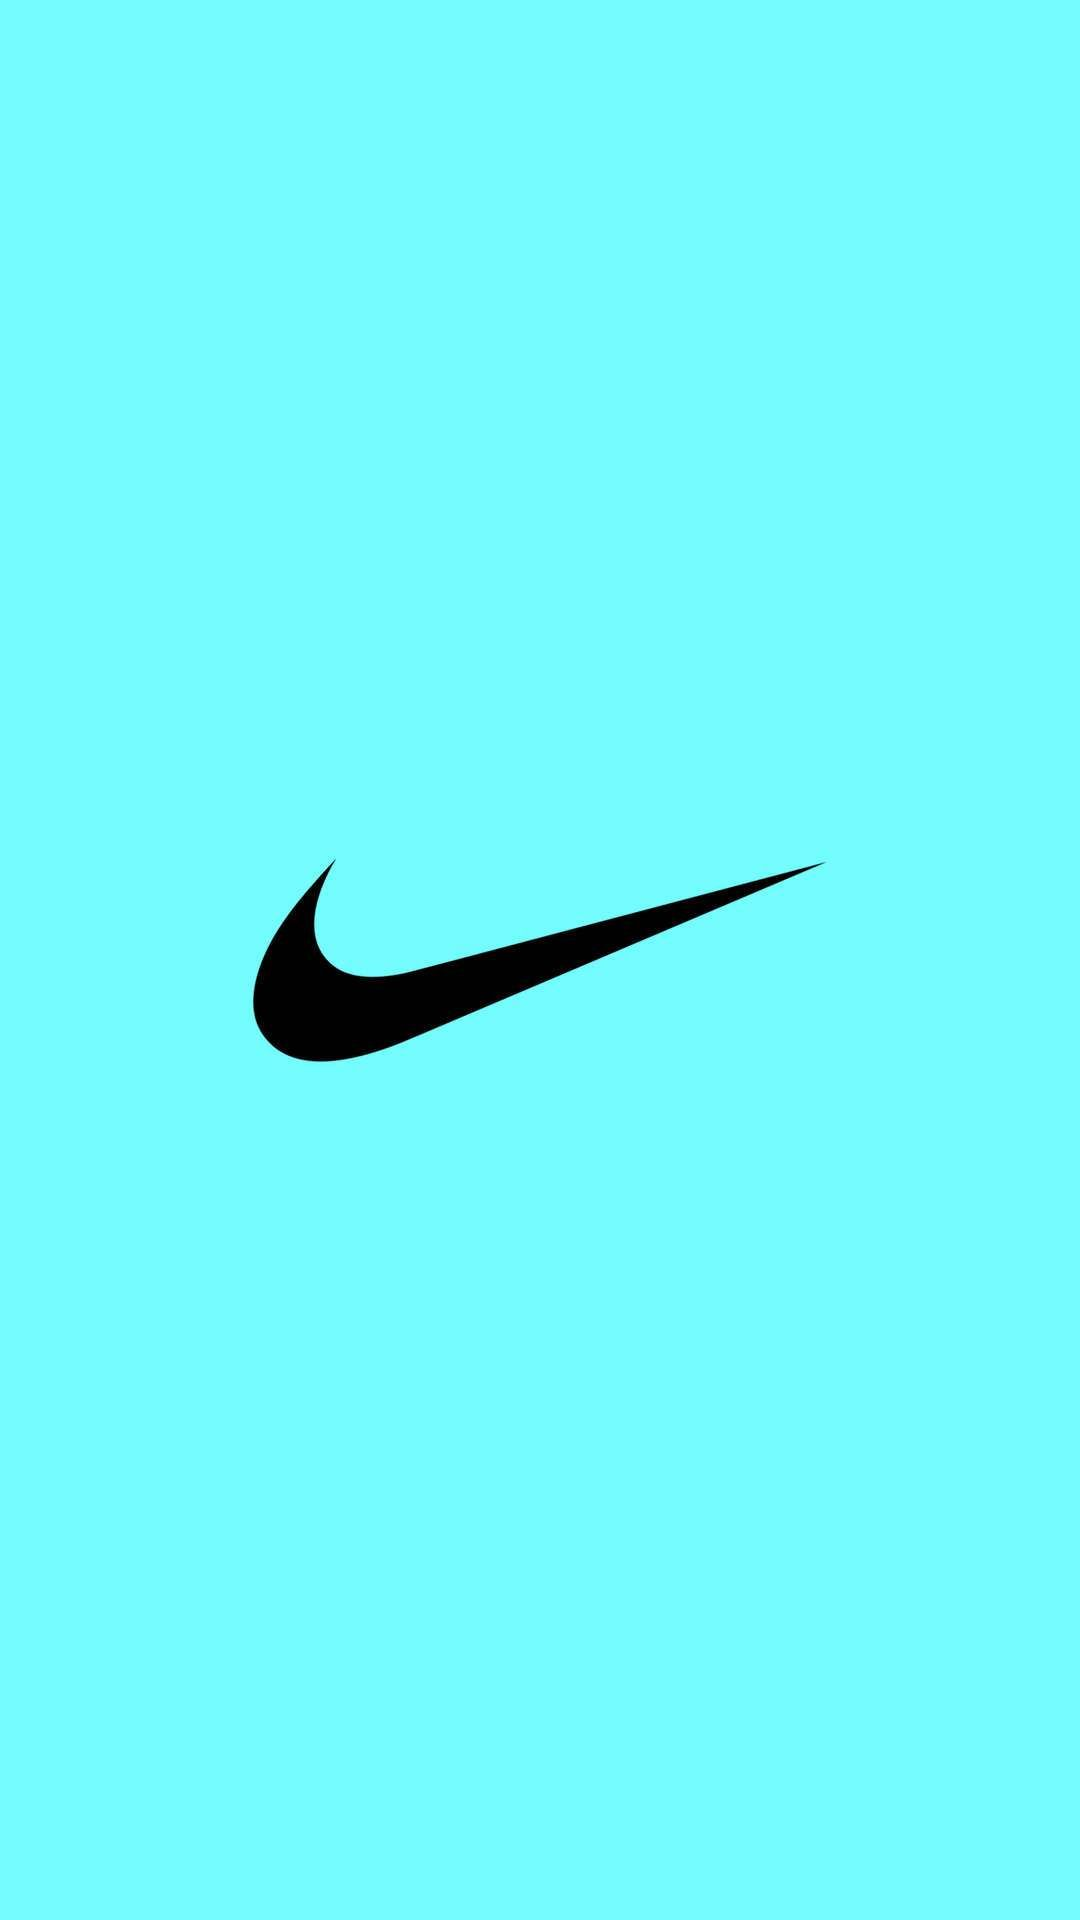 Nike Logo Iphone Wallpaper Nike Wallpaper Iphone Nike Wallpaper Adidas Wallpapers